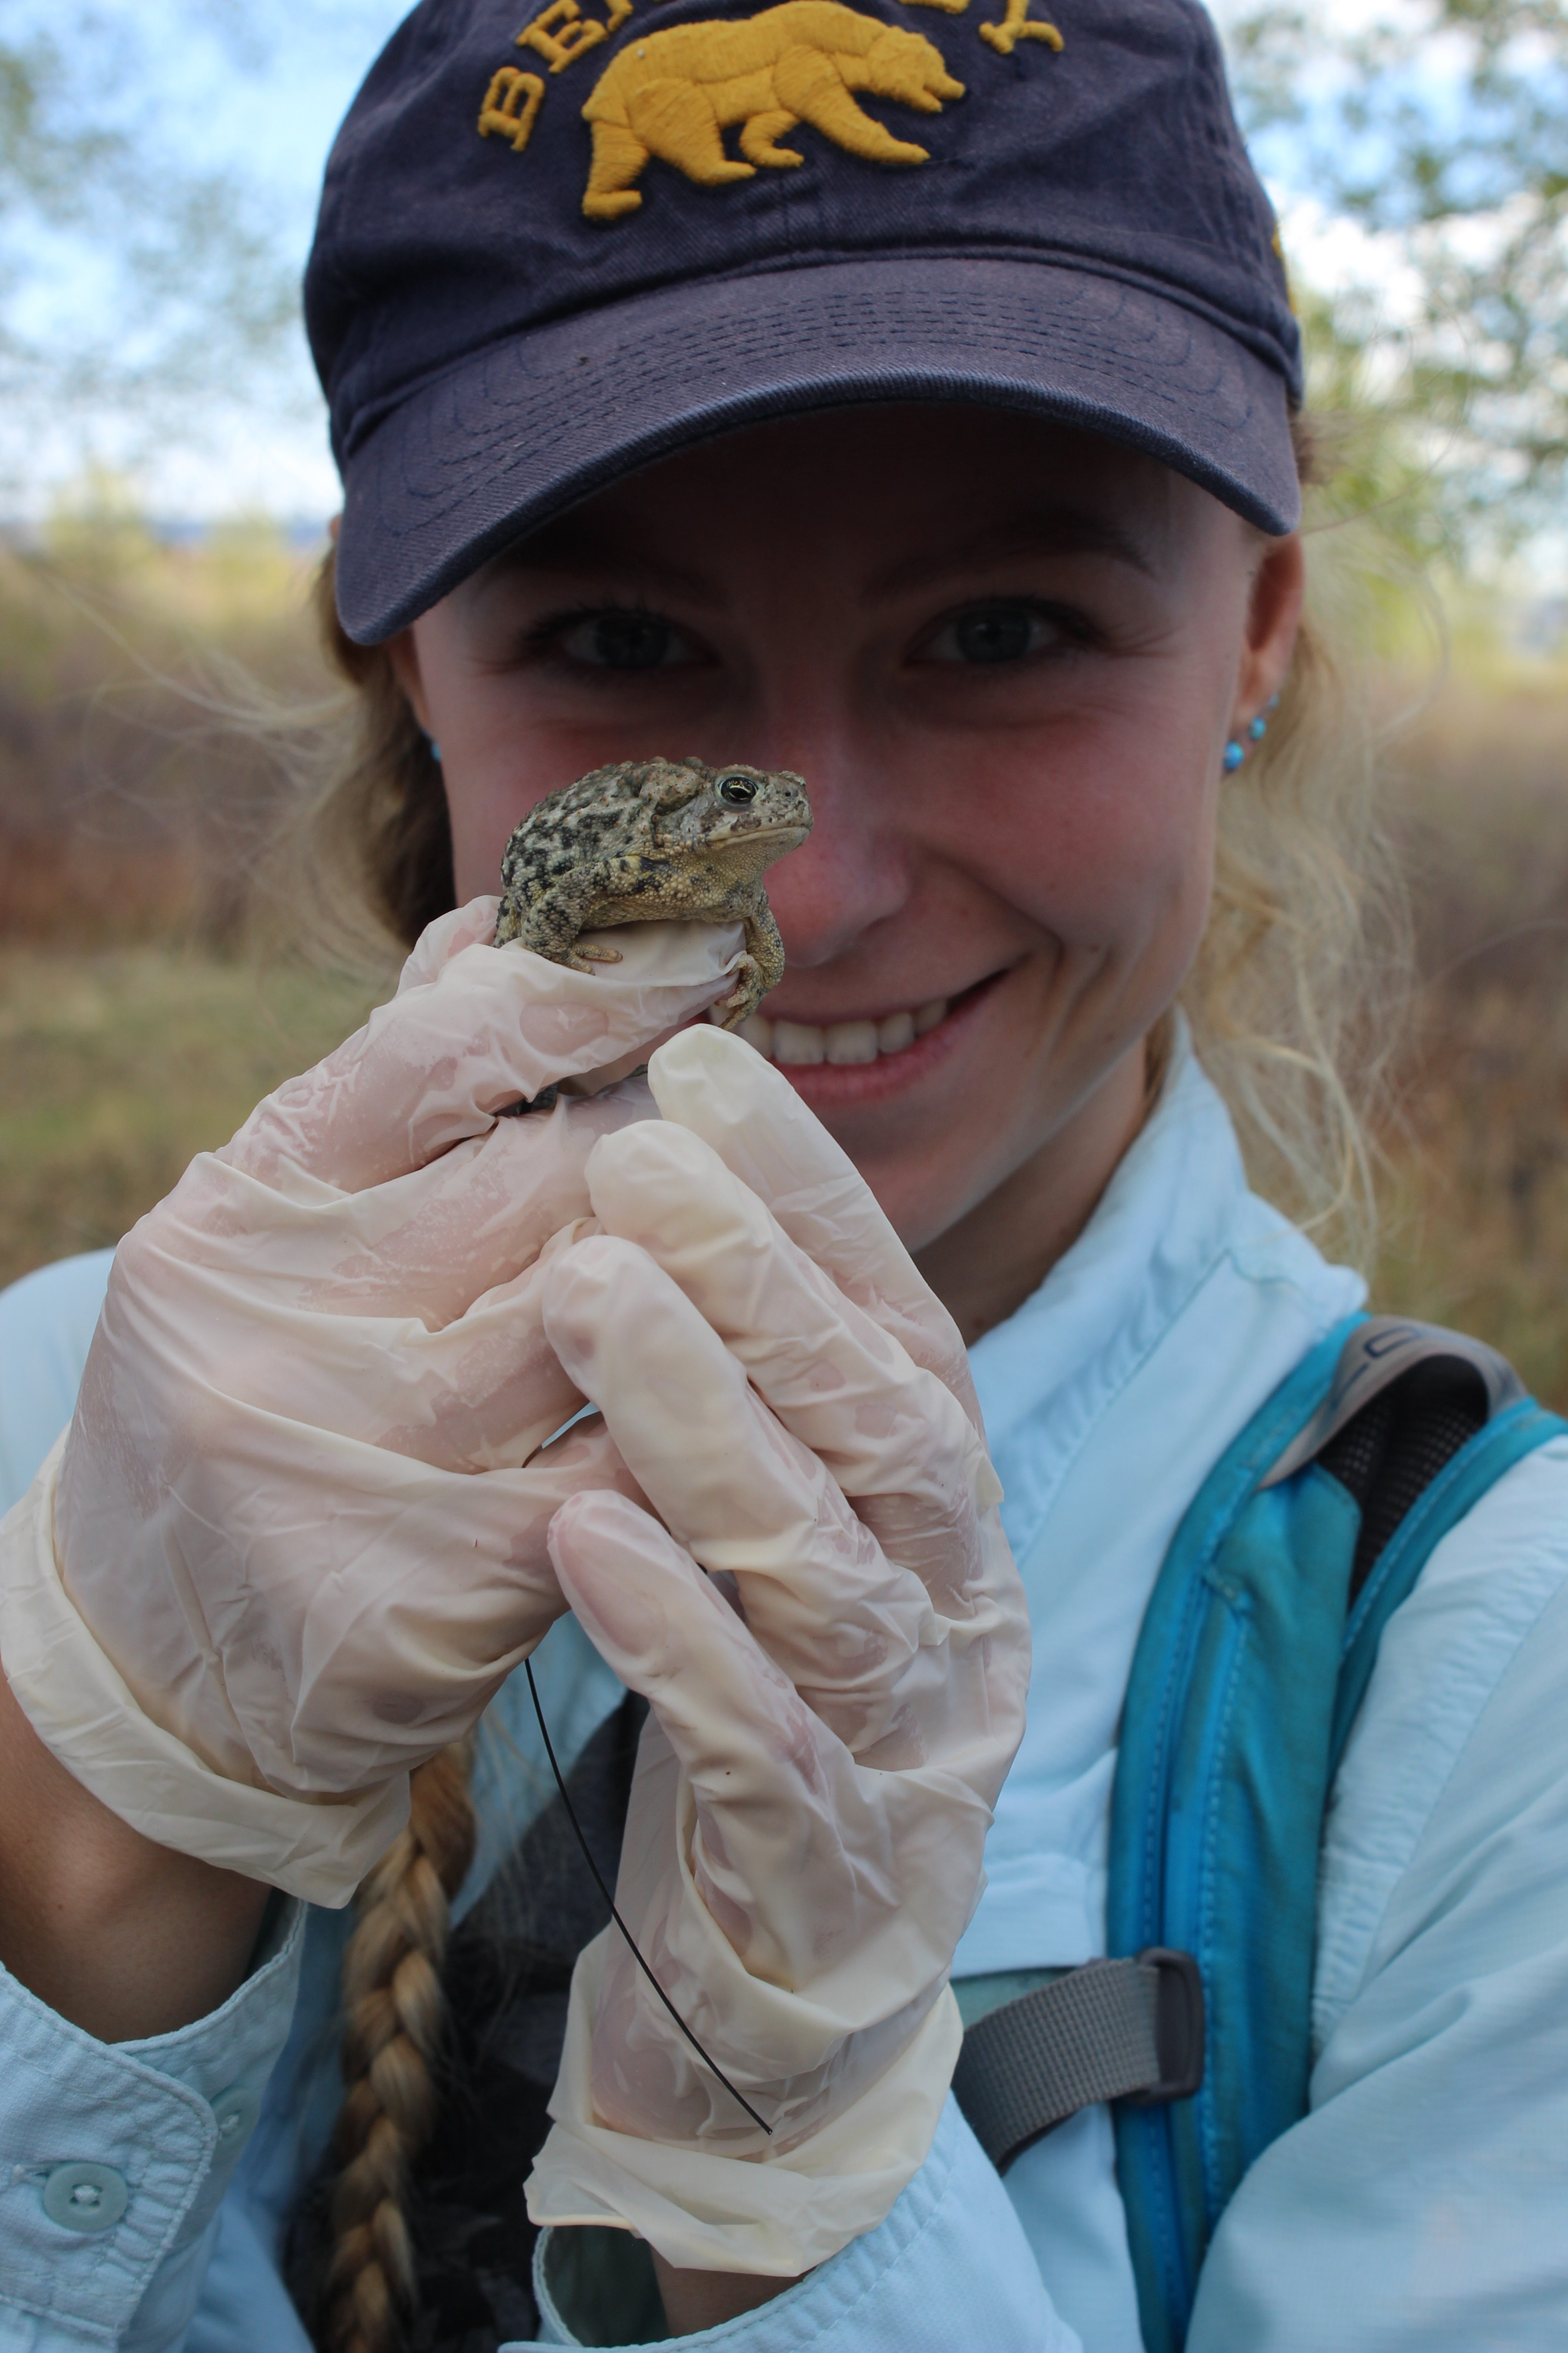 girl with ball cap and long blonde braid holding a Wyoming toad in front of her face and smiling